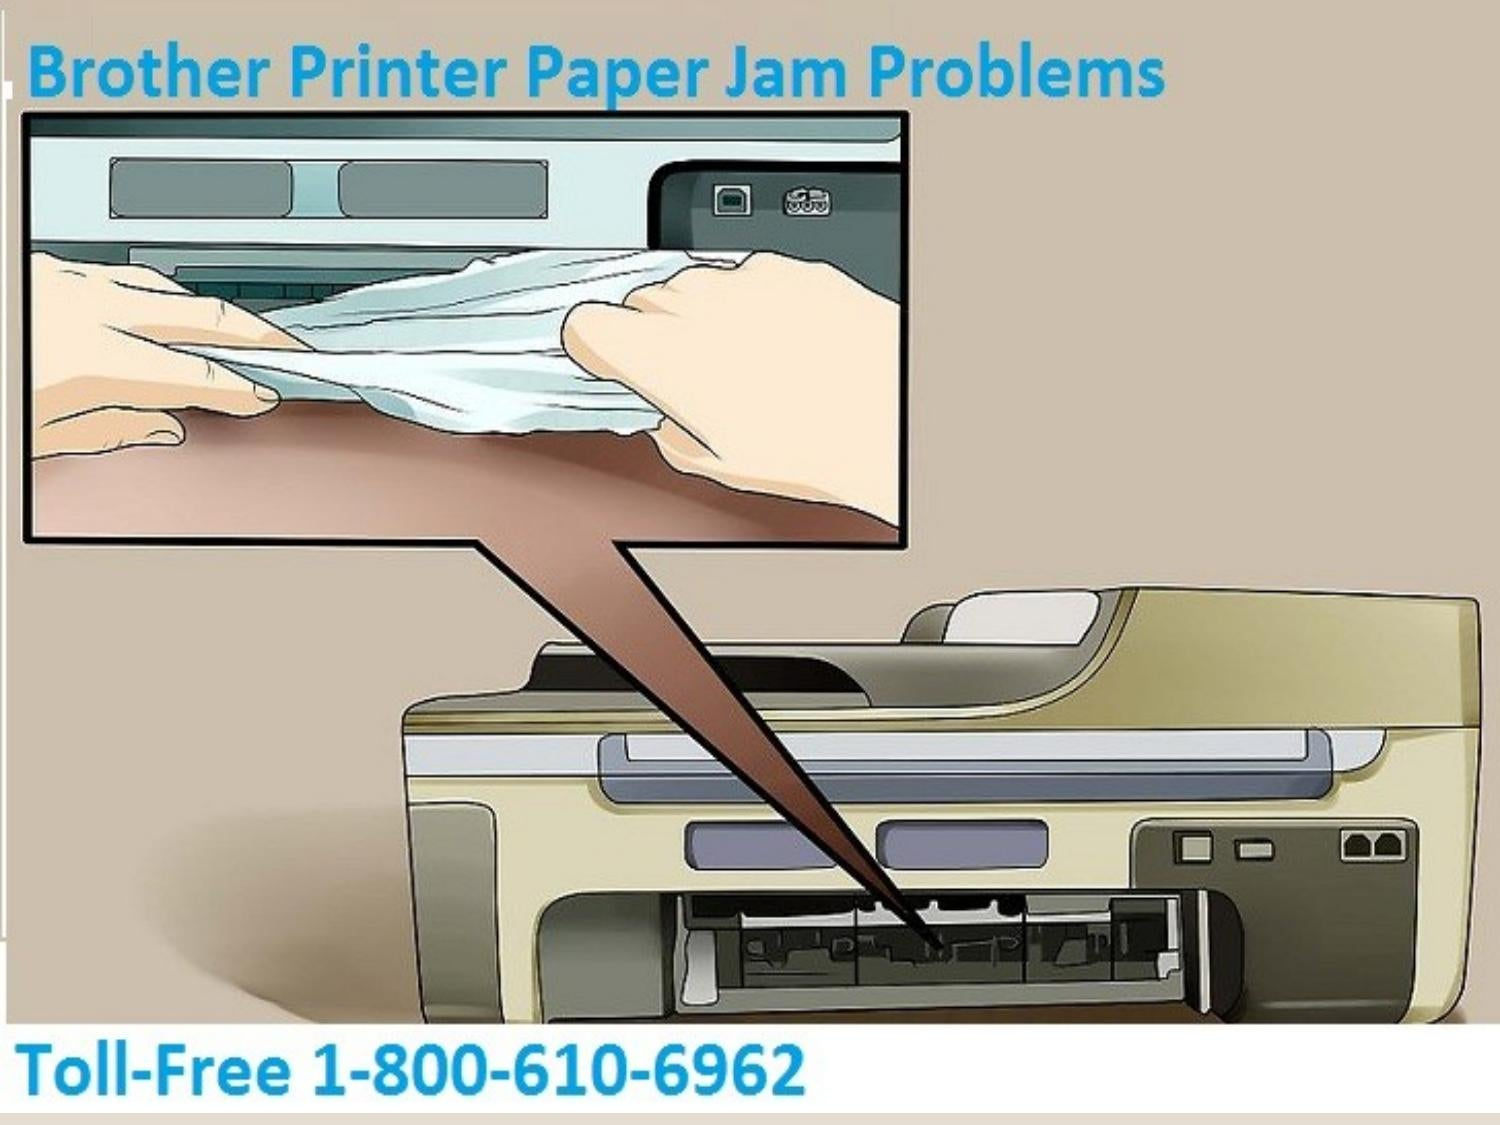 How To Fix Brother Printer Paper Jam Problems? +1 877-208